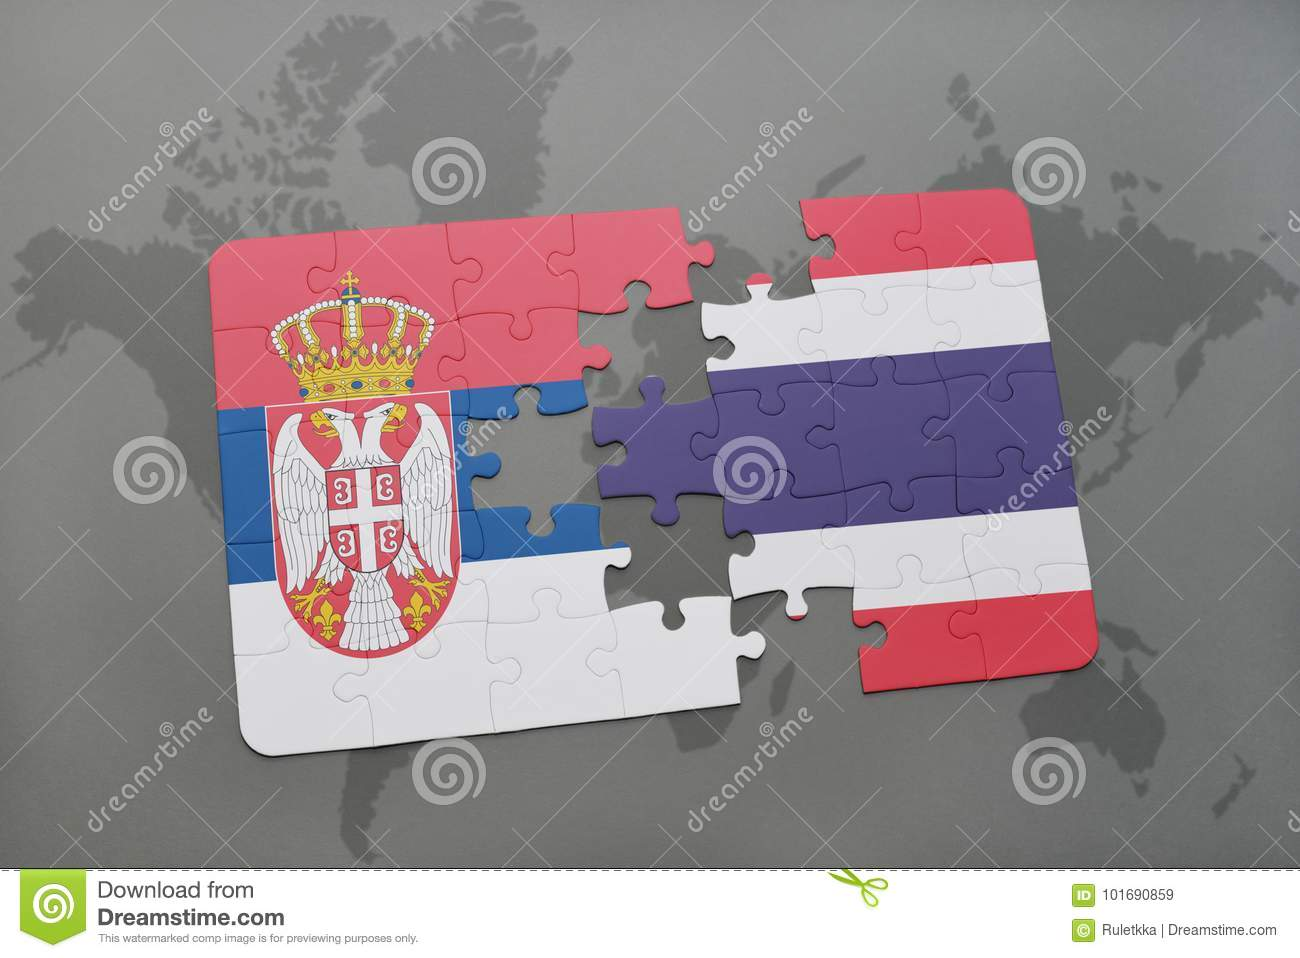 puzzle with the national flag of serbia and thailand on a world map